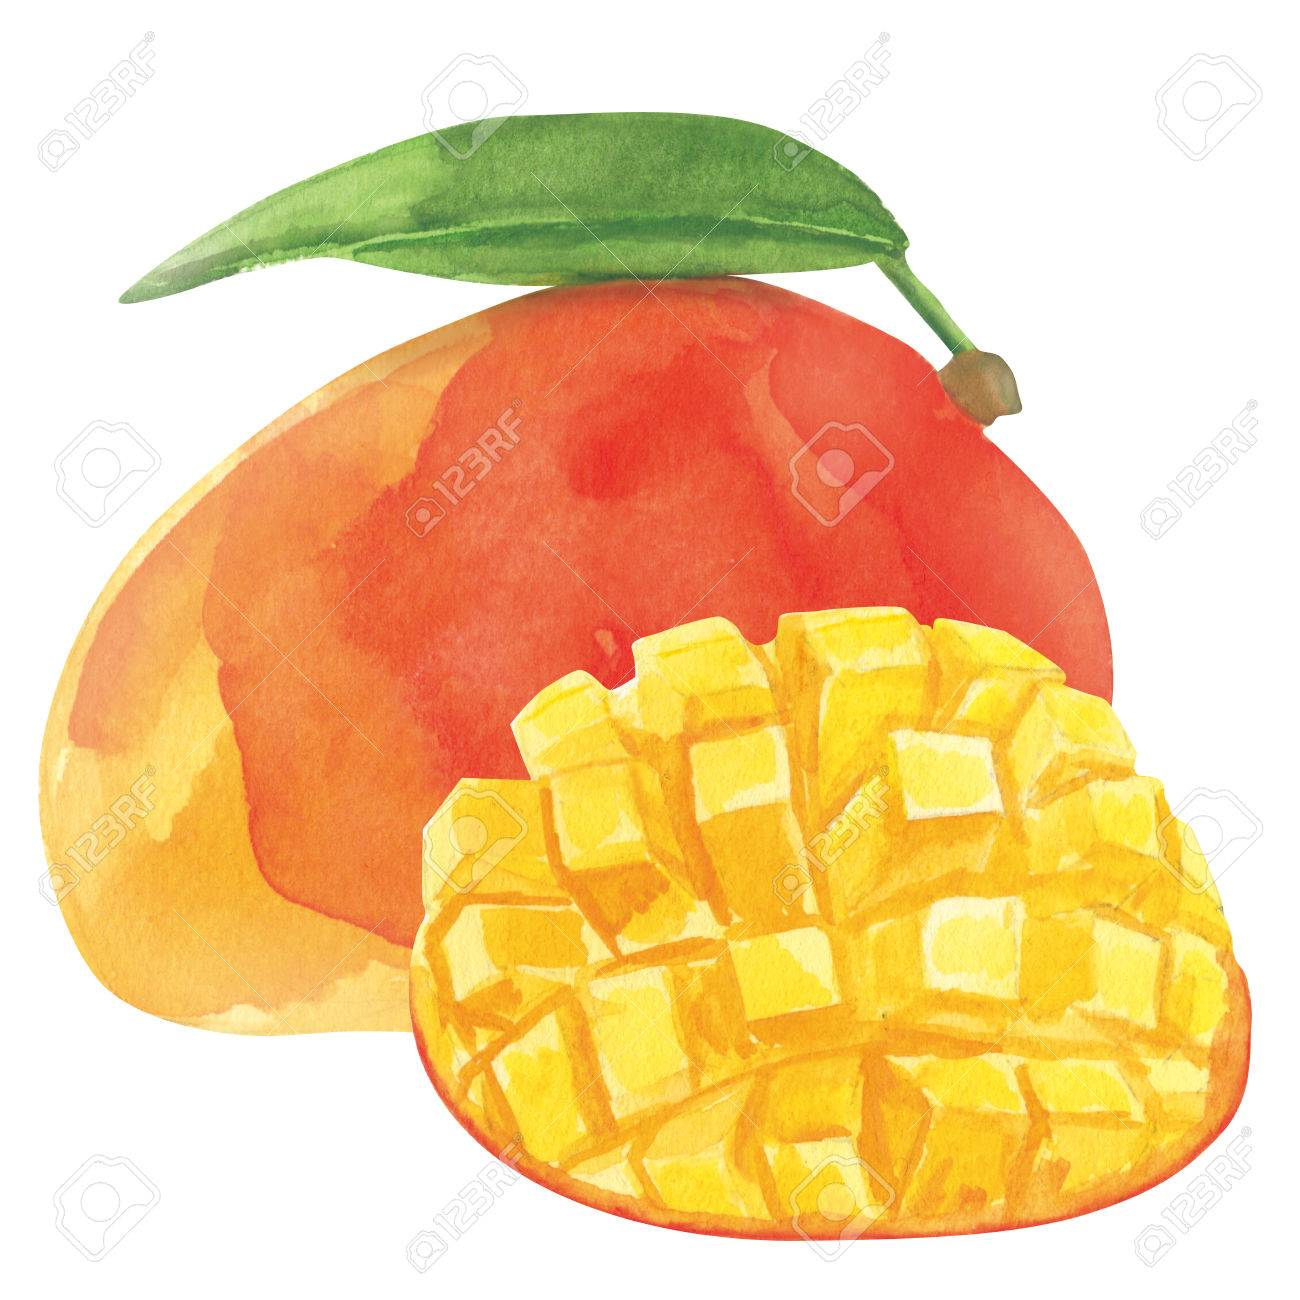 Watercolor fresh ripe mango fruit, closeup isolated on white background. Hand painting on paper - 80243781